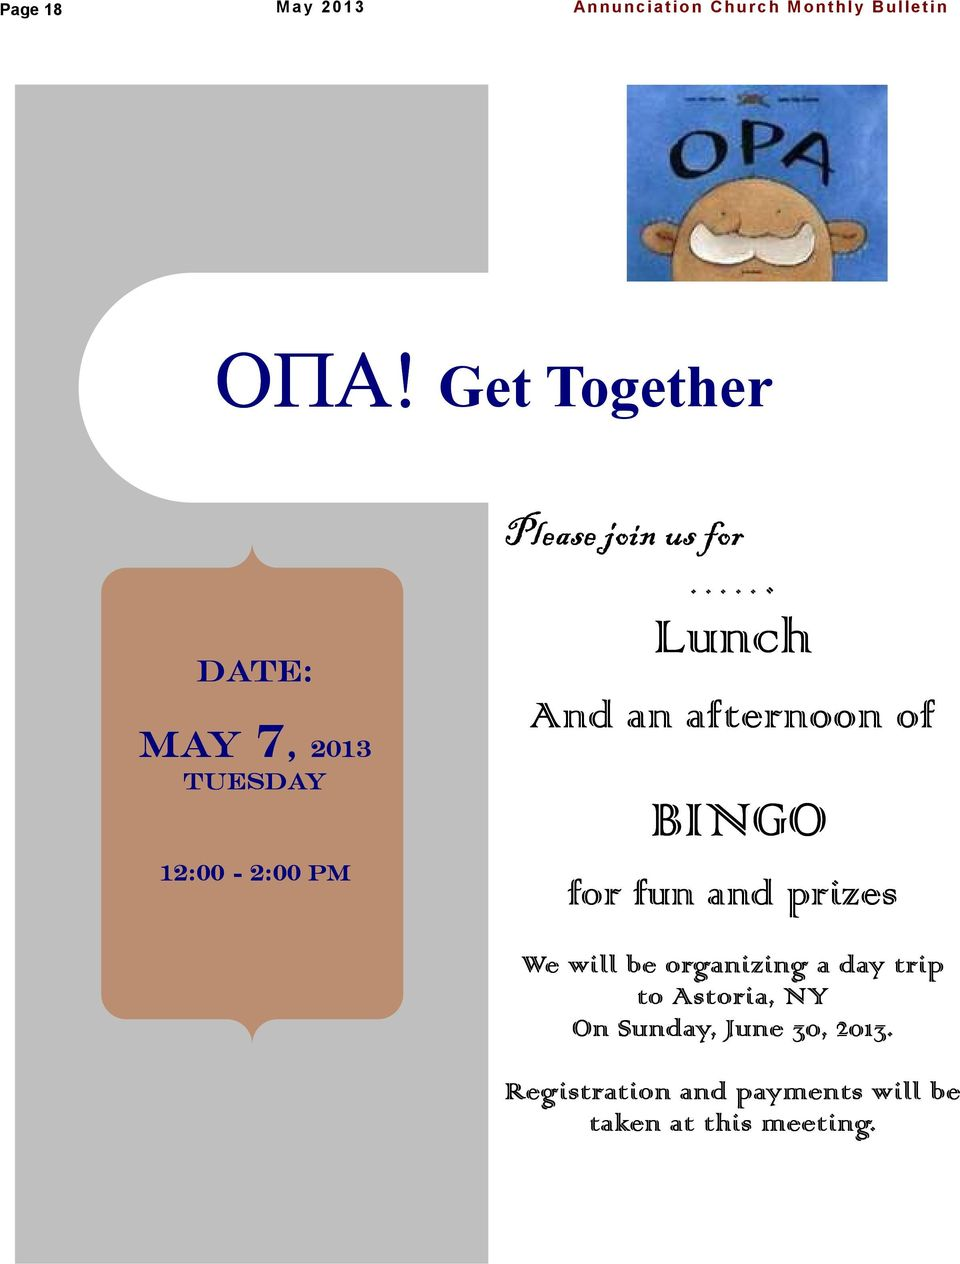 ..... Lunch And an afternoon of BINGO for fun and prizes We will be organizing a